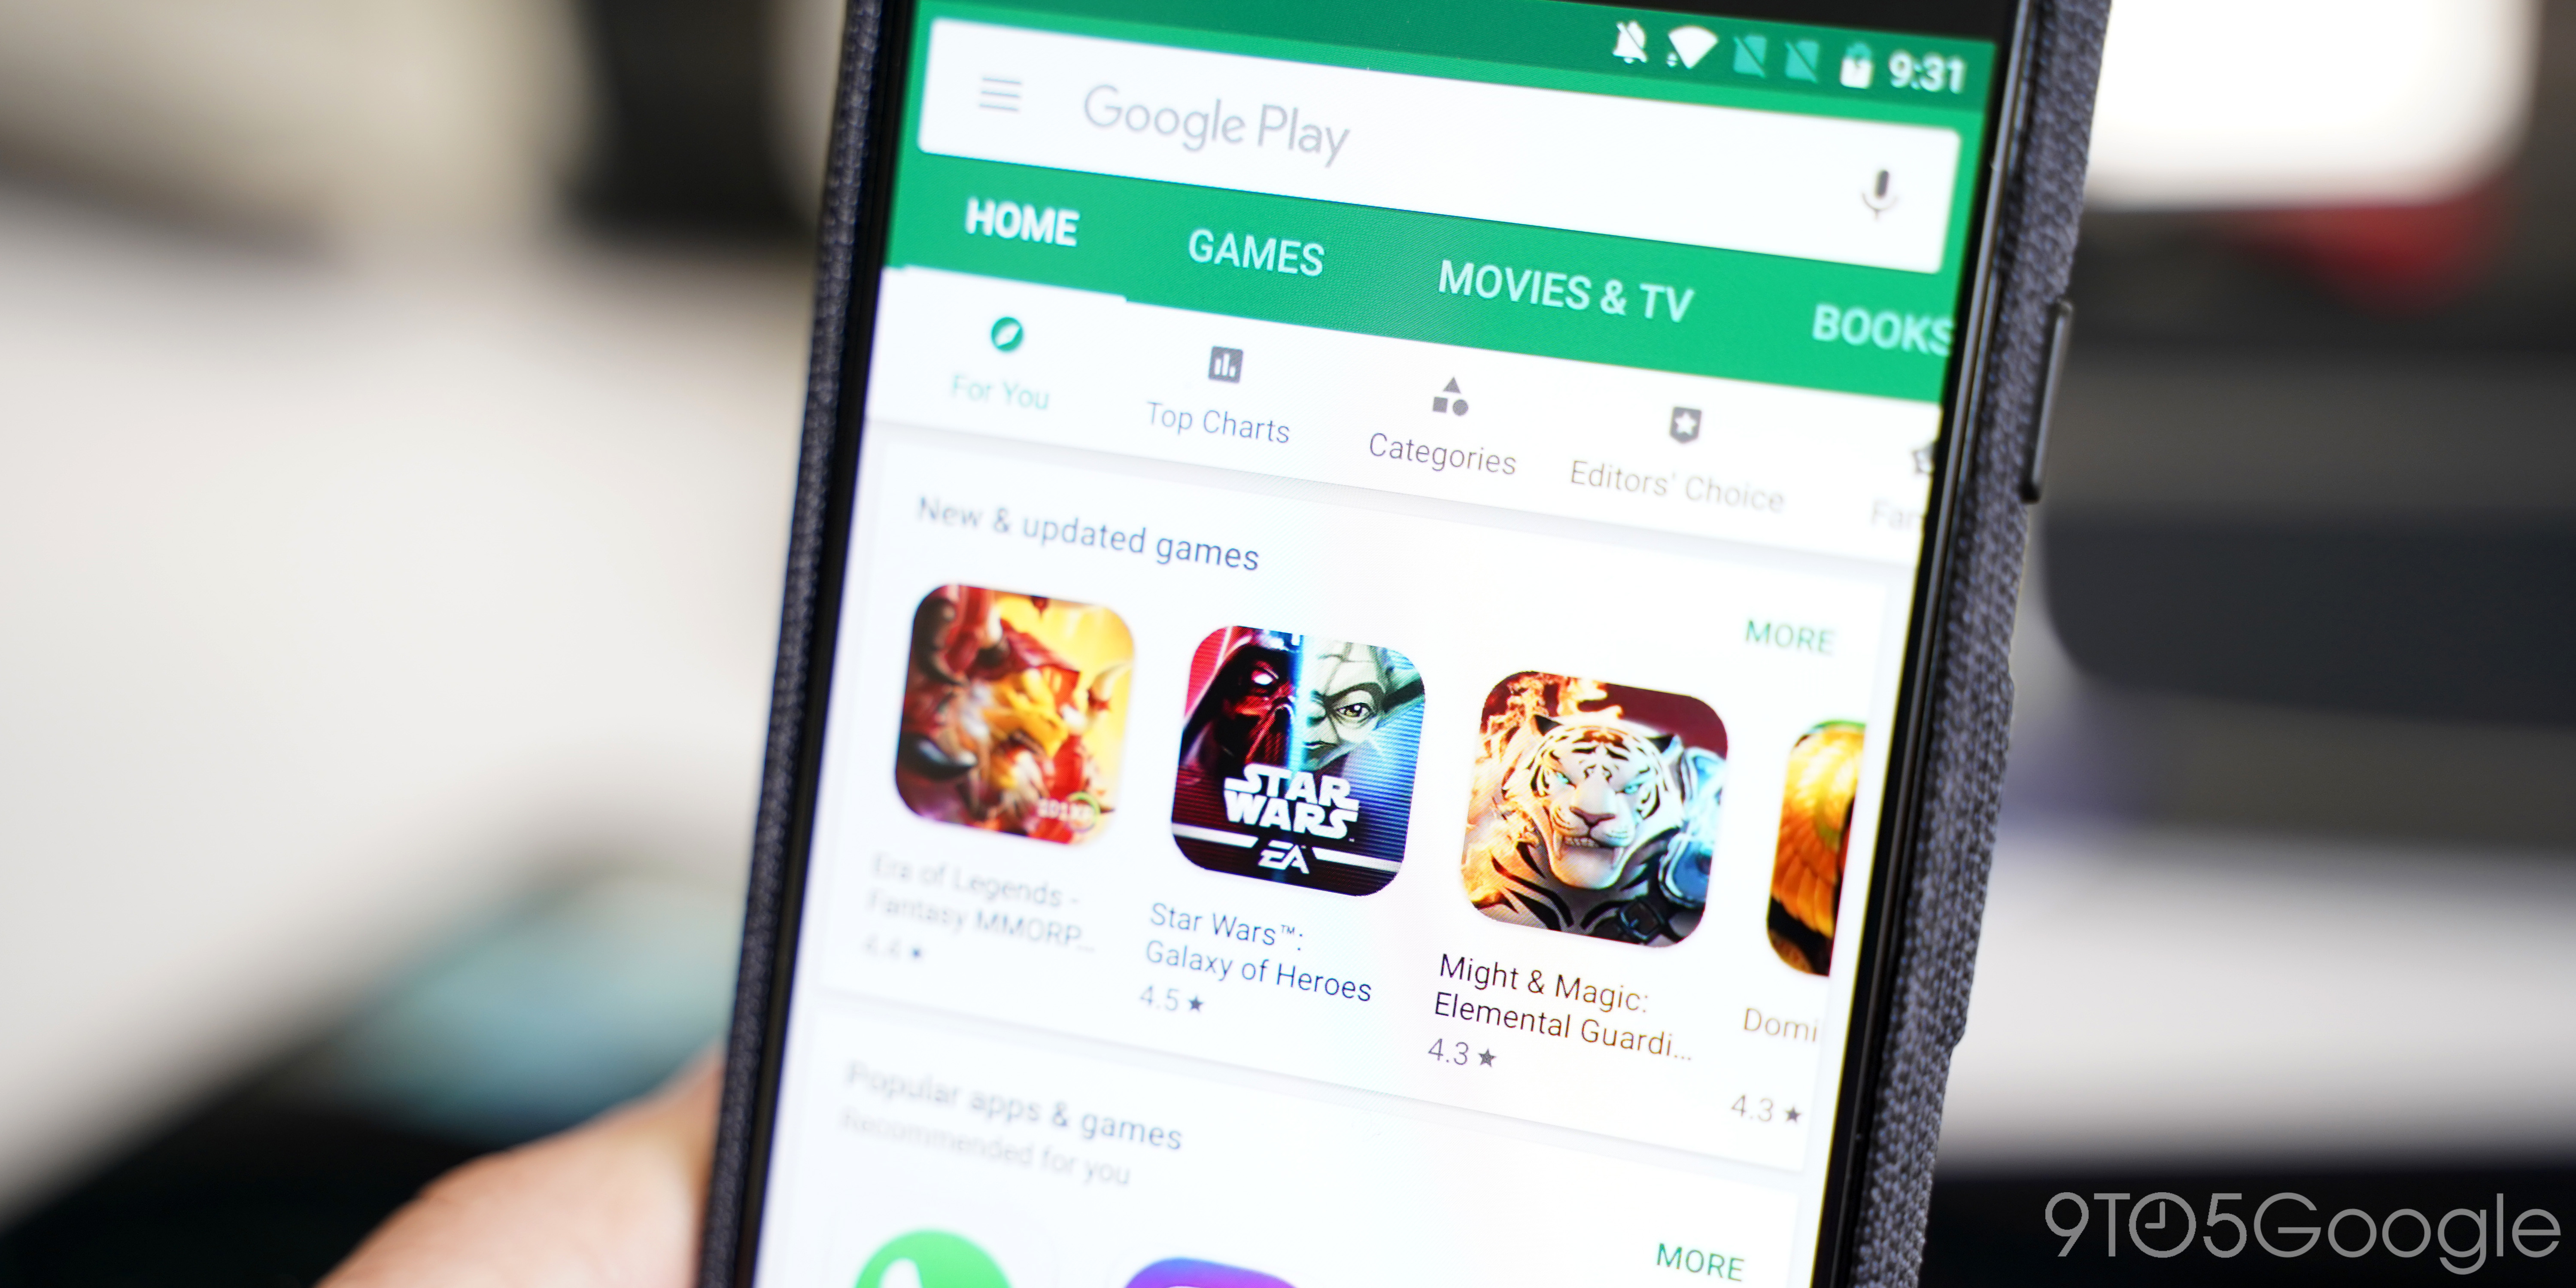 Android developers can now enable rounded square icons in Google Play